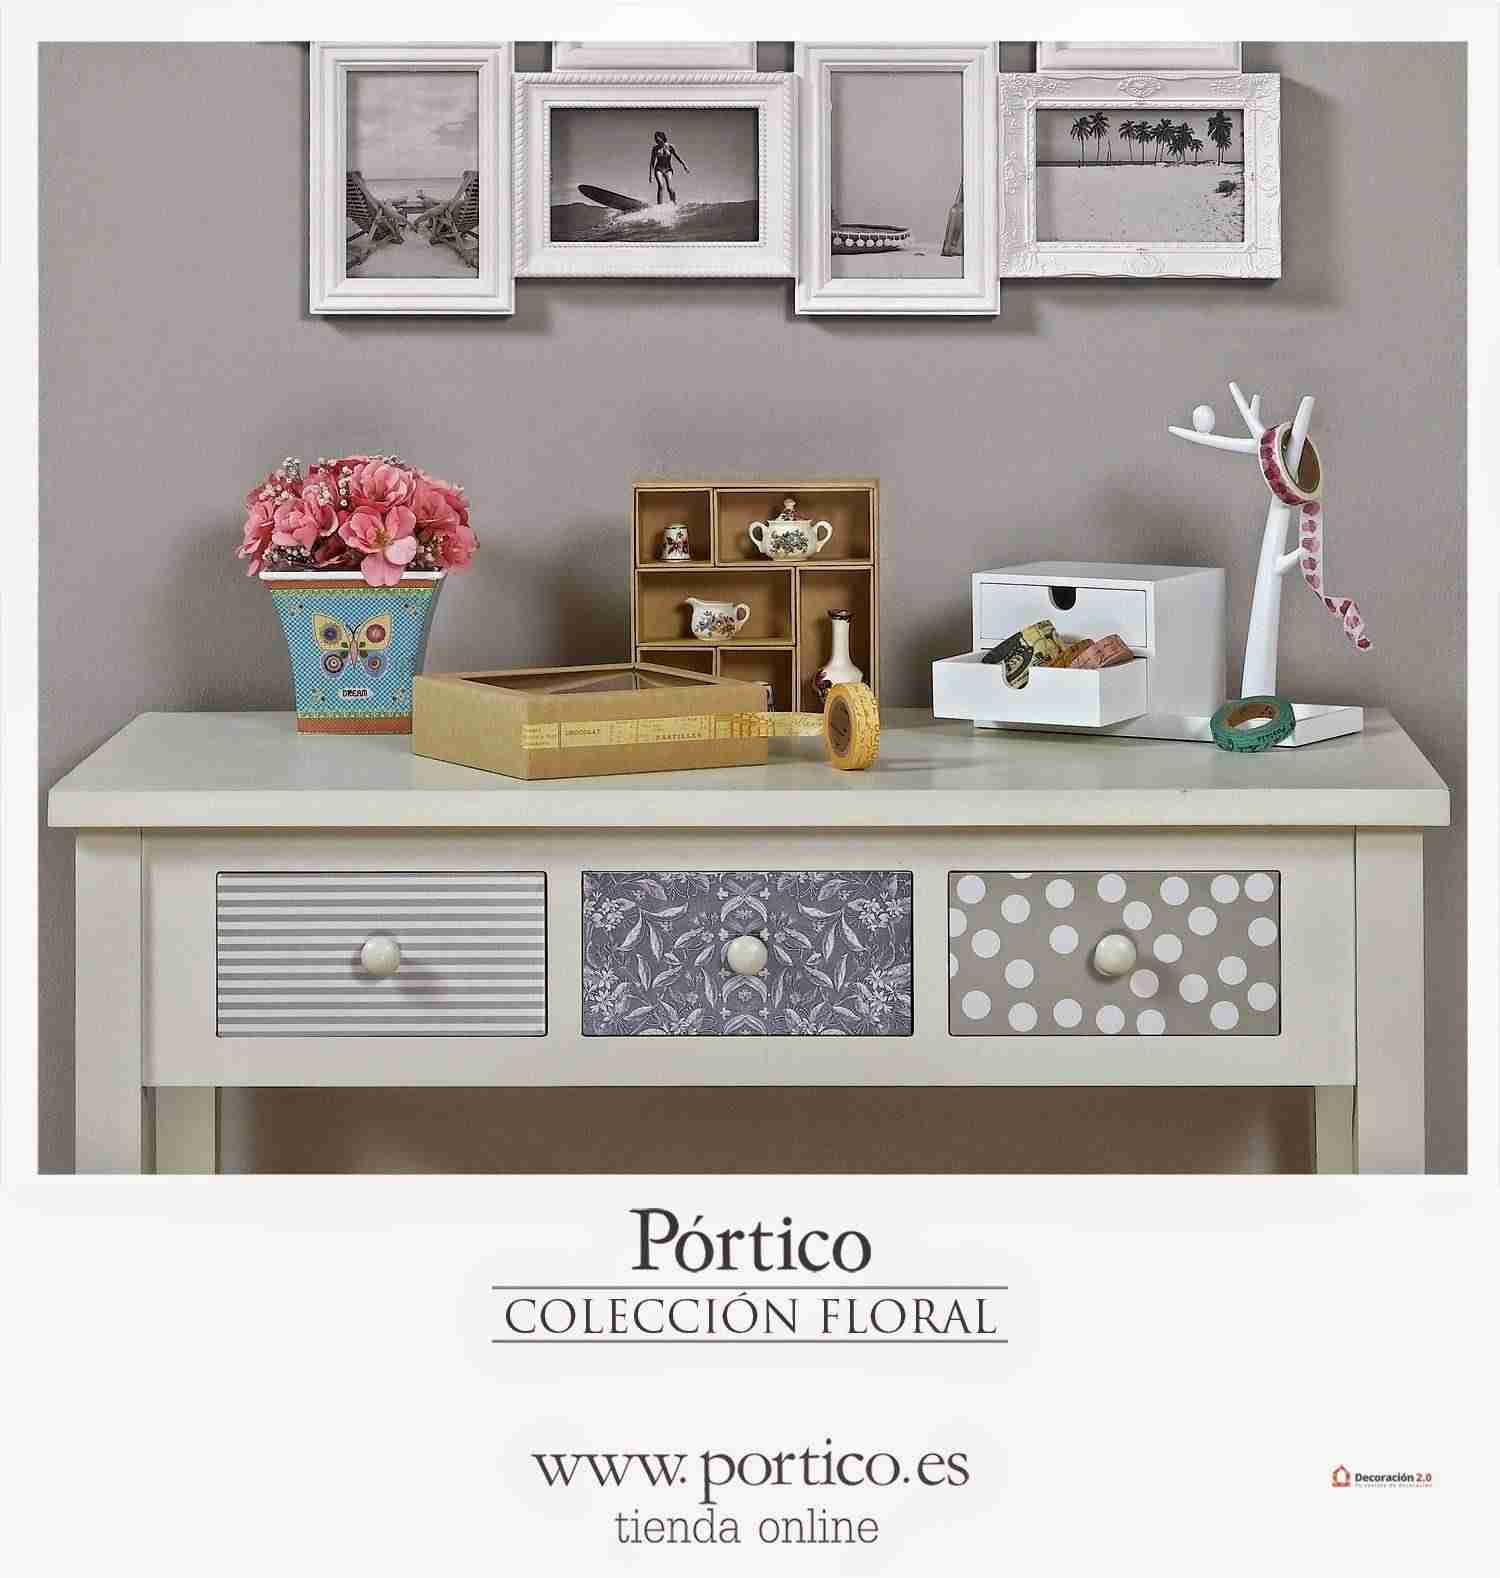 Portico Muebles On Line Decoracion Para Tiendas Cheap Una Gran Oportunidad De